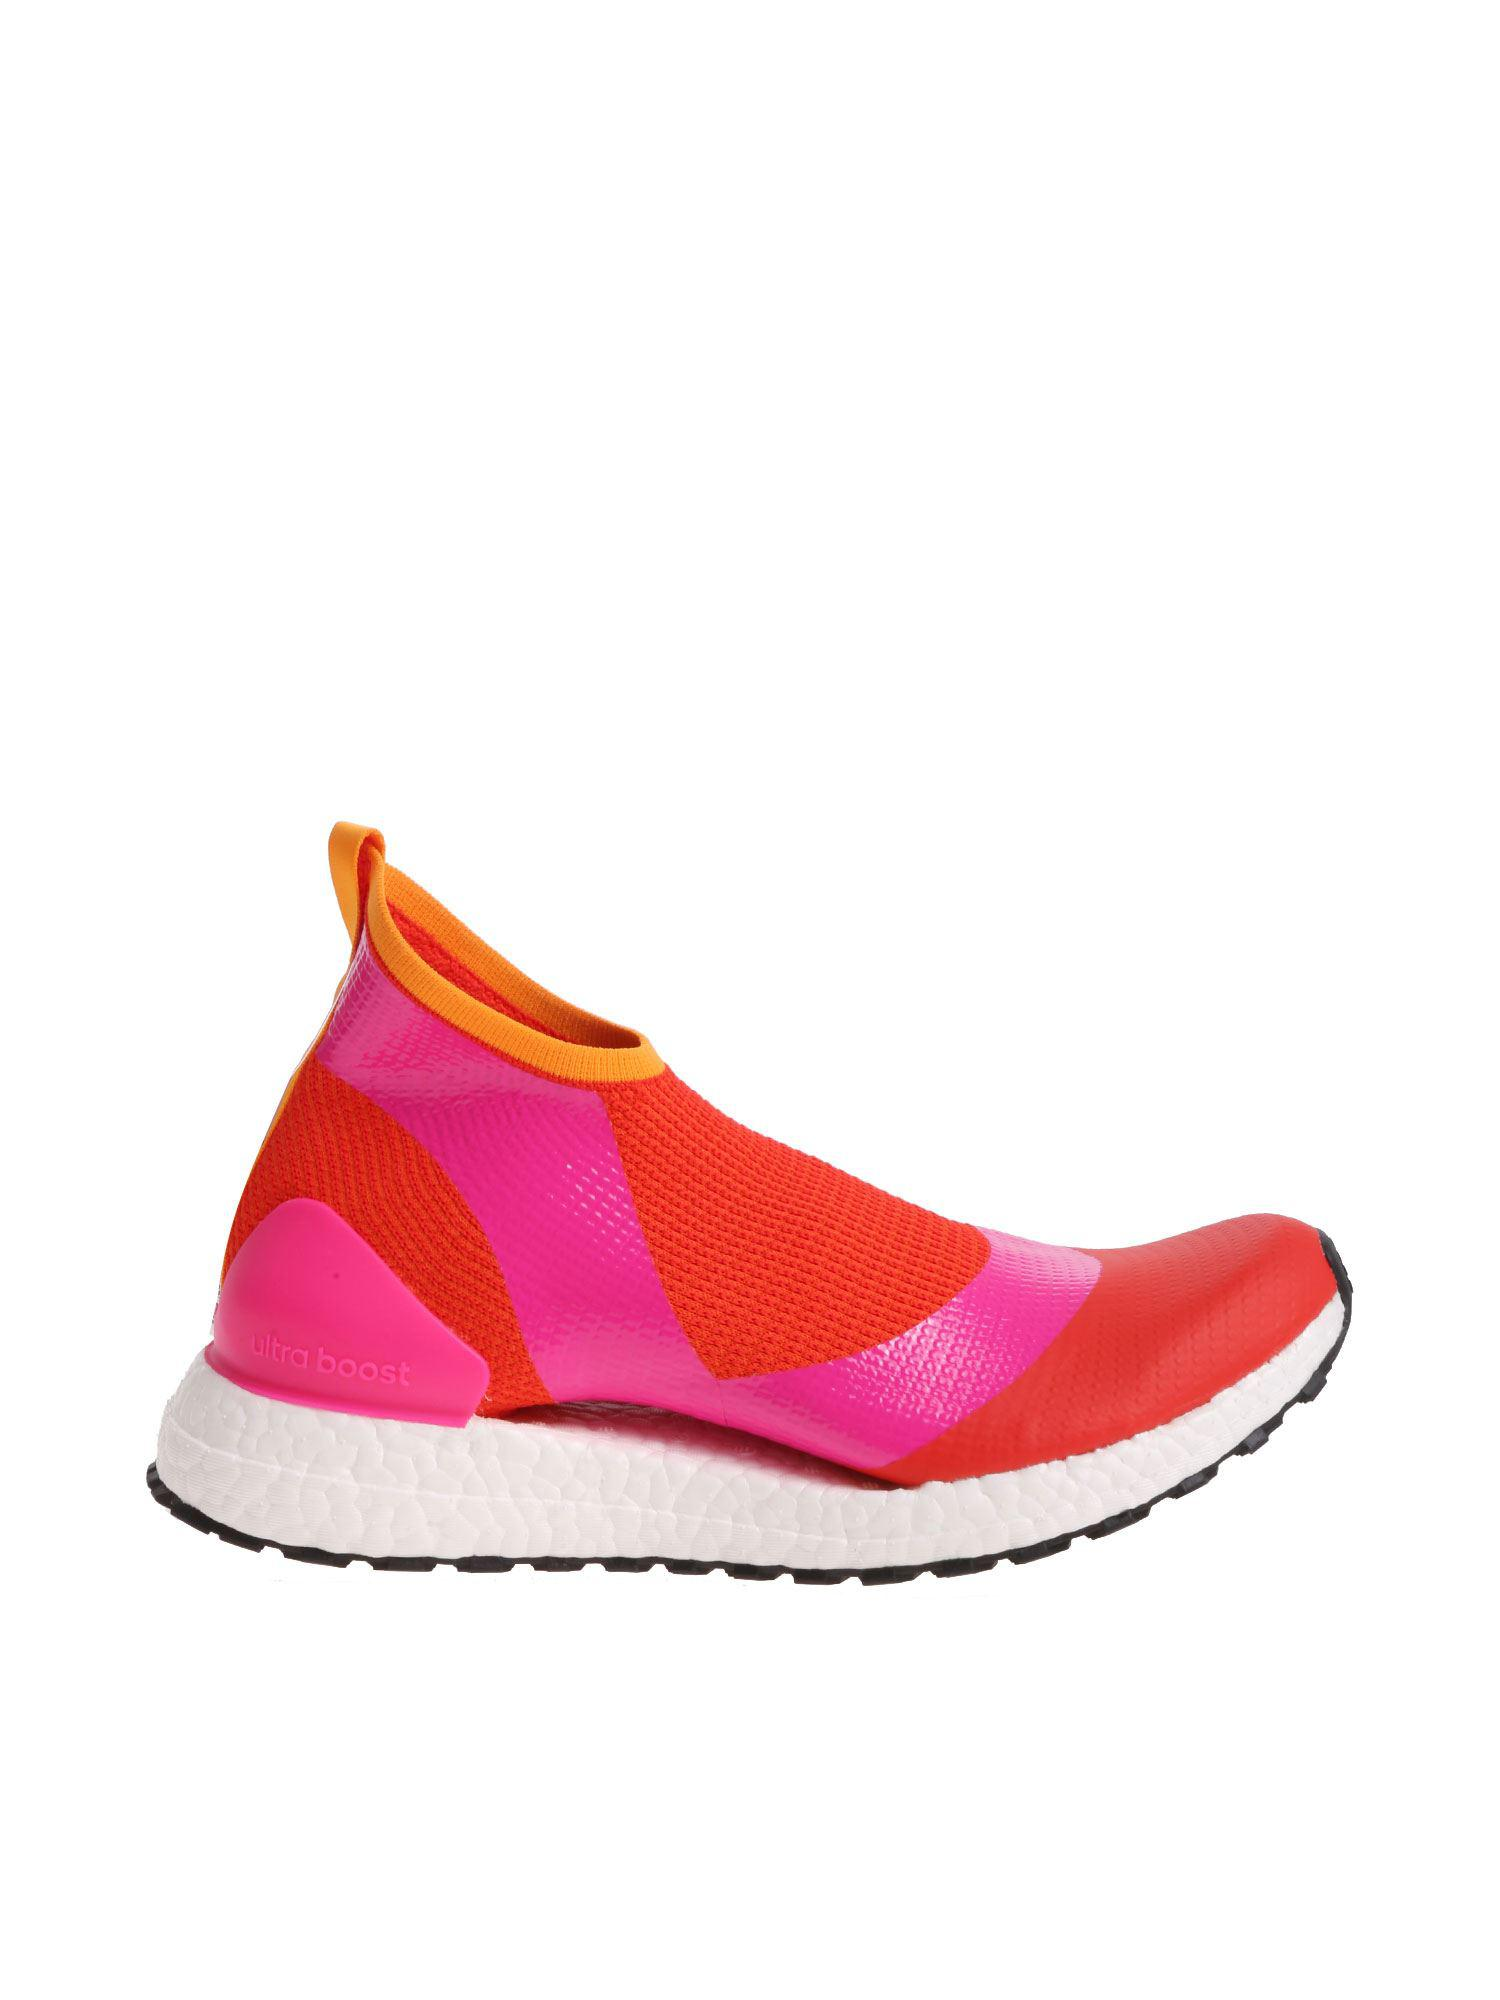 dc6f0eb253494 adidas By Stella McCartney. Women s Red Ultraboost X All Terrain Trainers